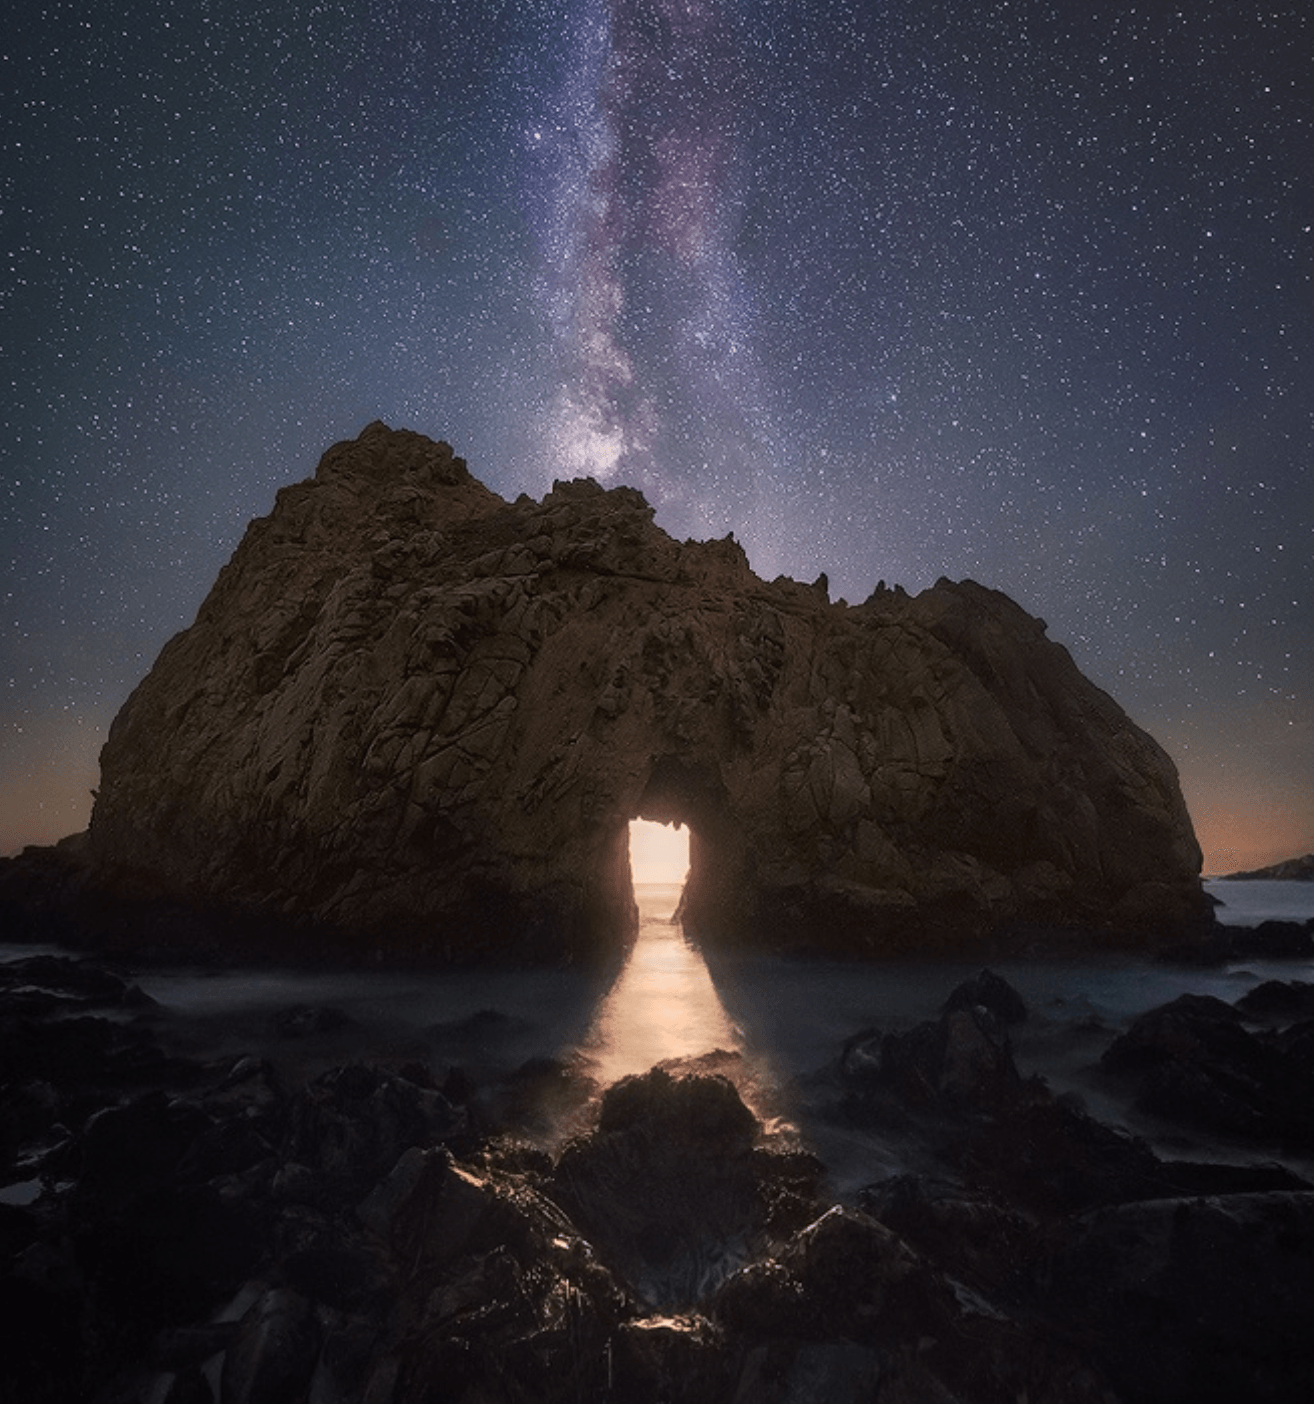 Temple of Moonlight by Michael Shainblum